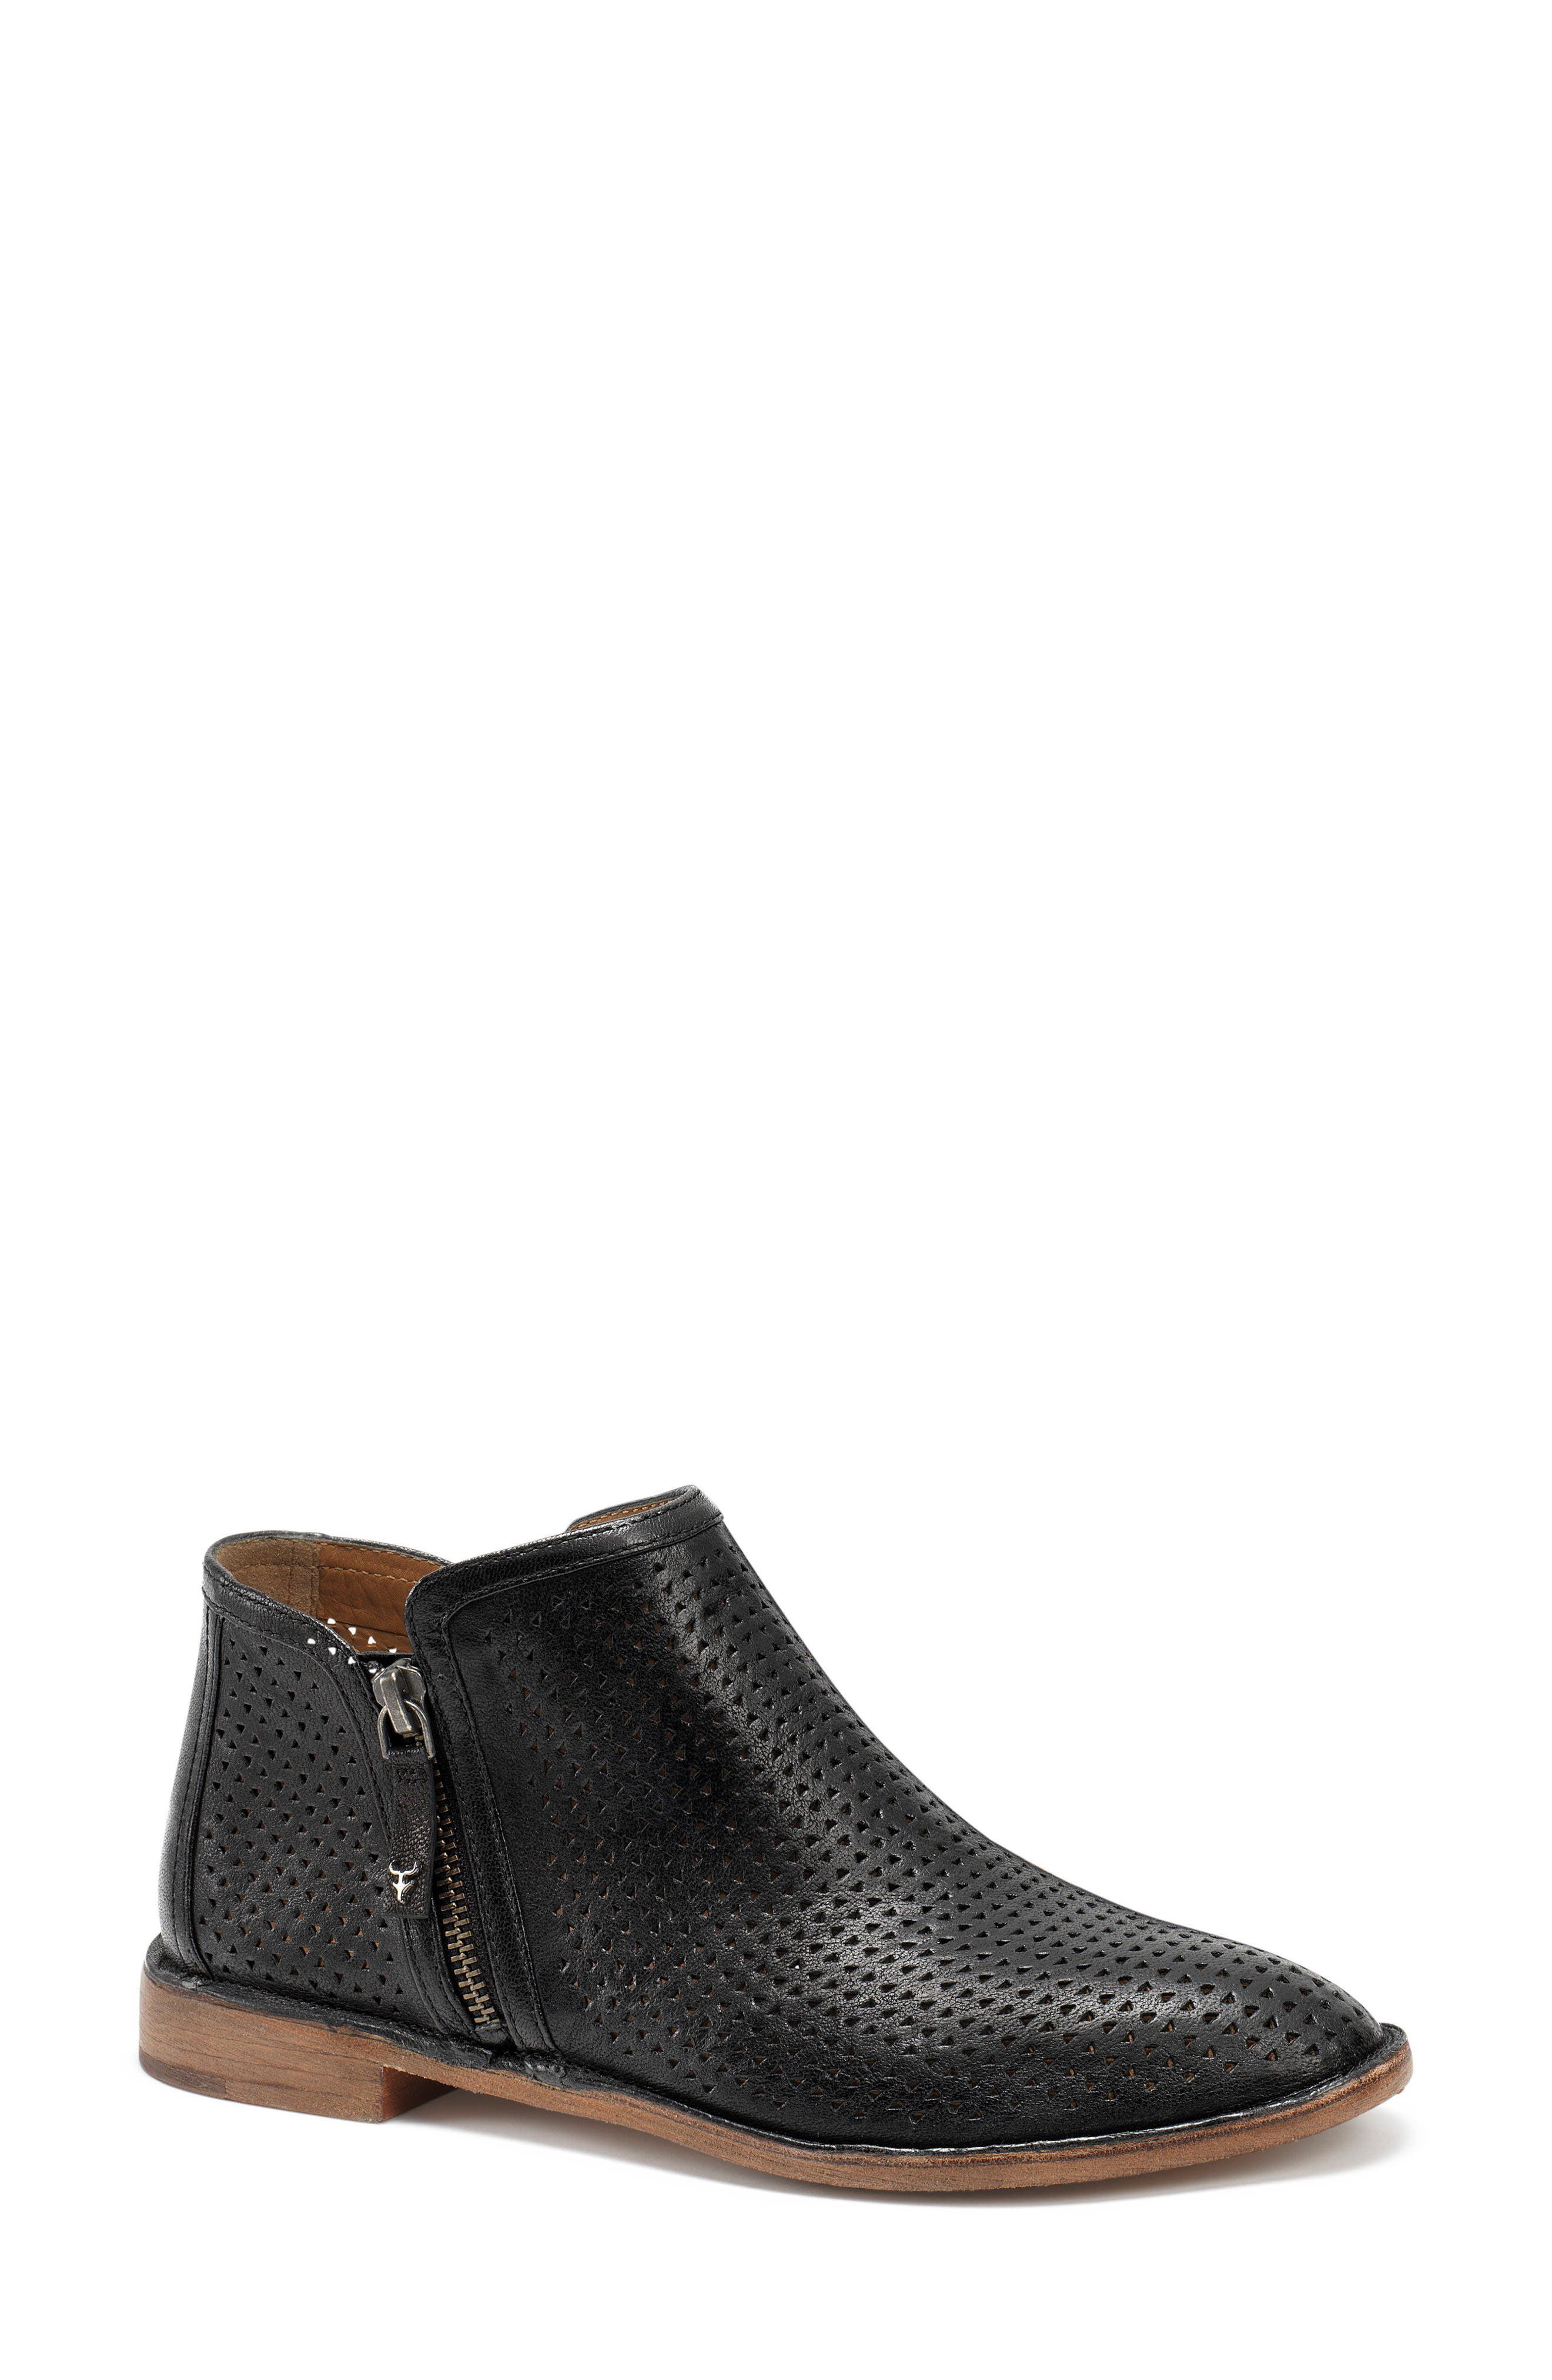 Trask Addison Low Perforated Bootie, Black